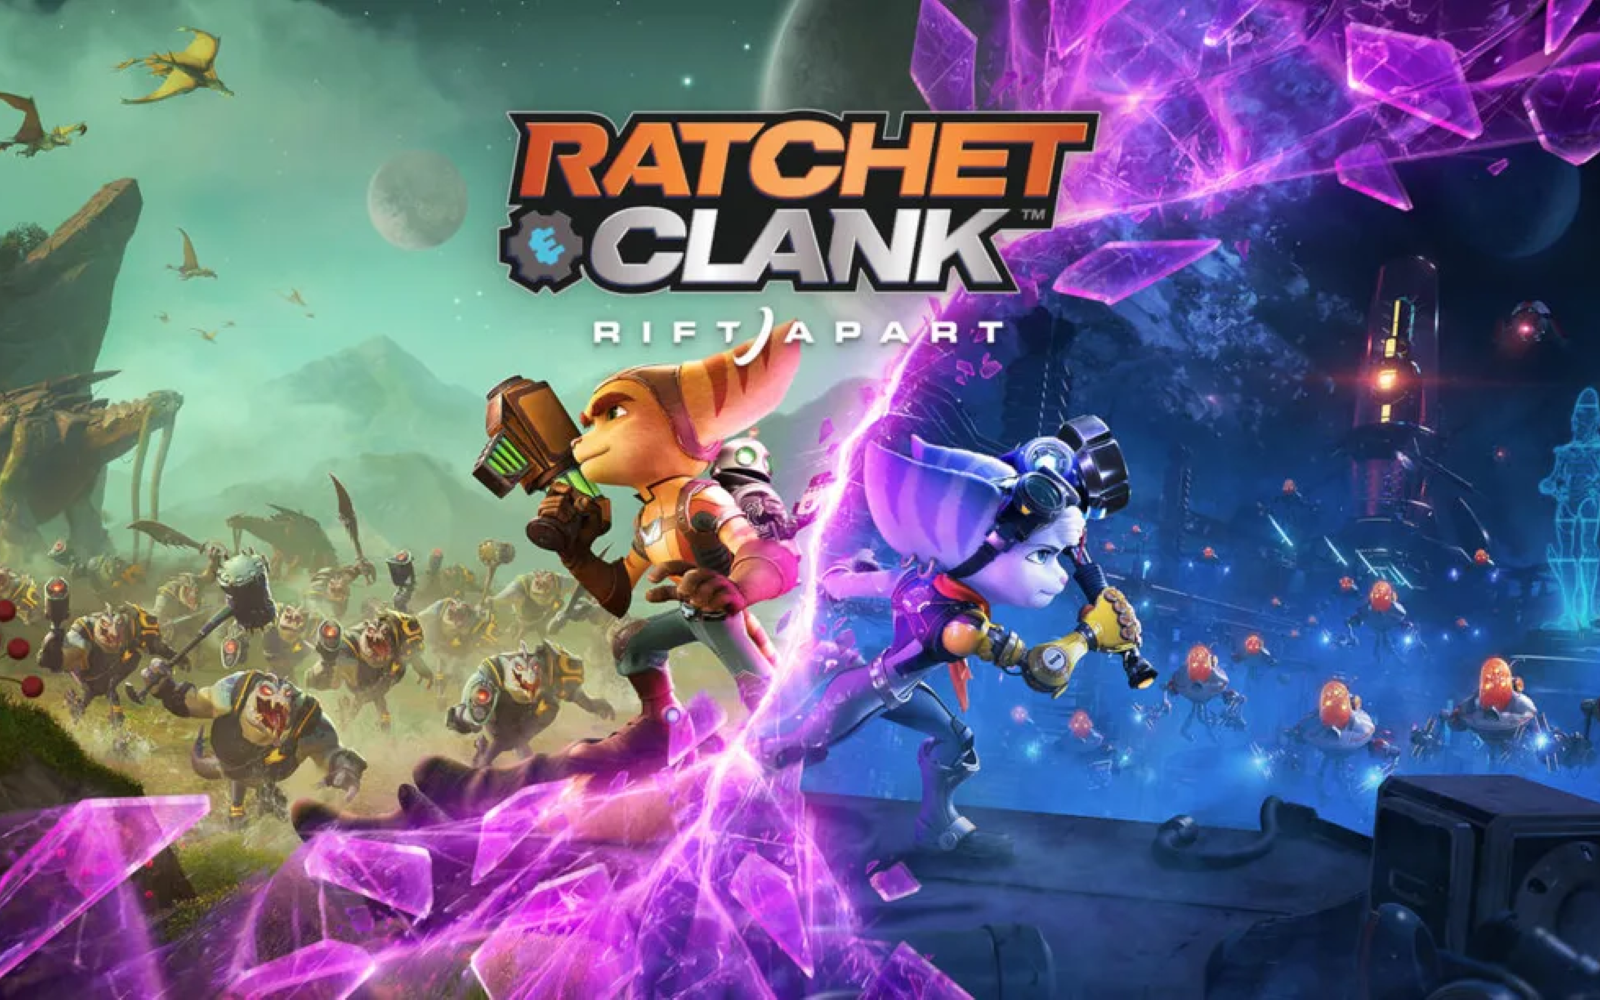 Ratchet And Clank Return June 11th